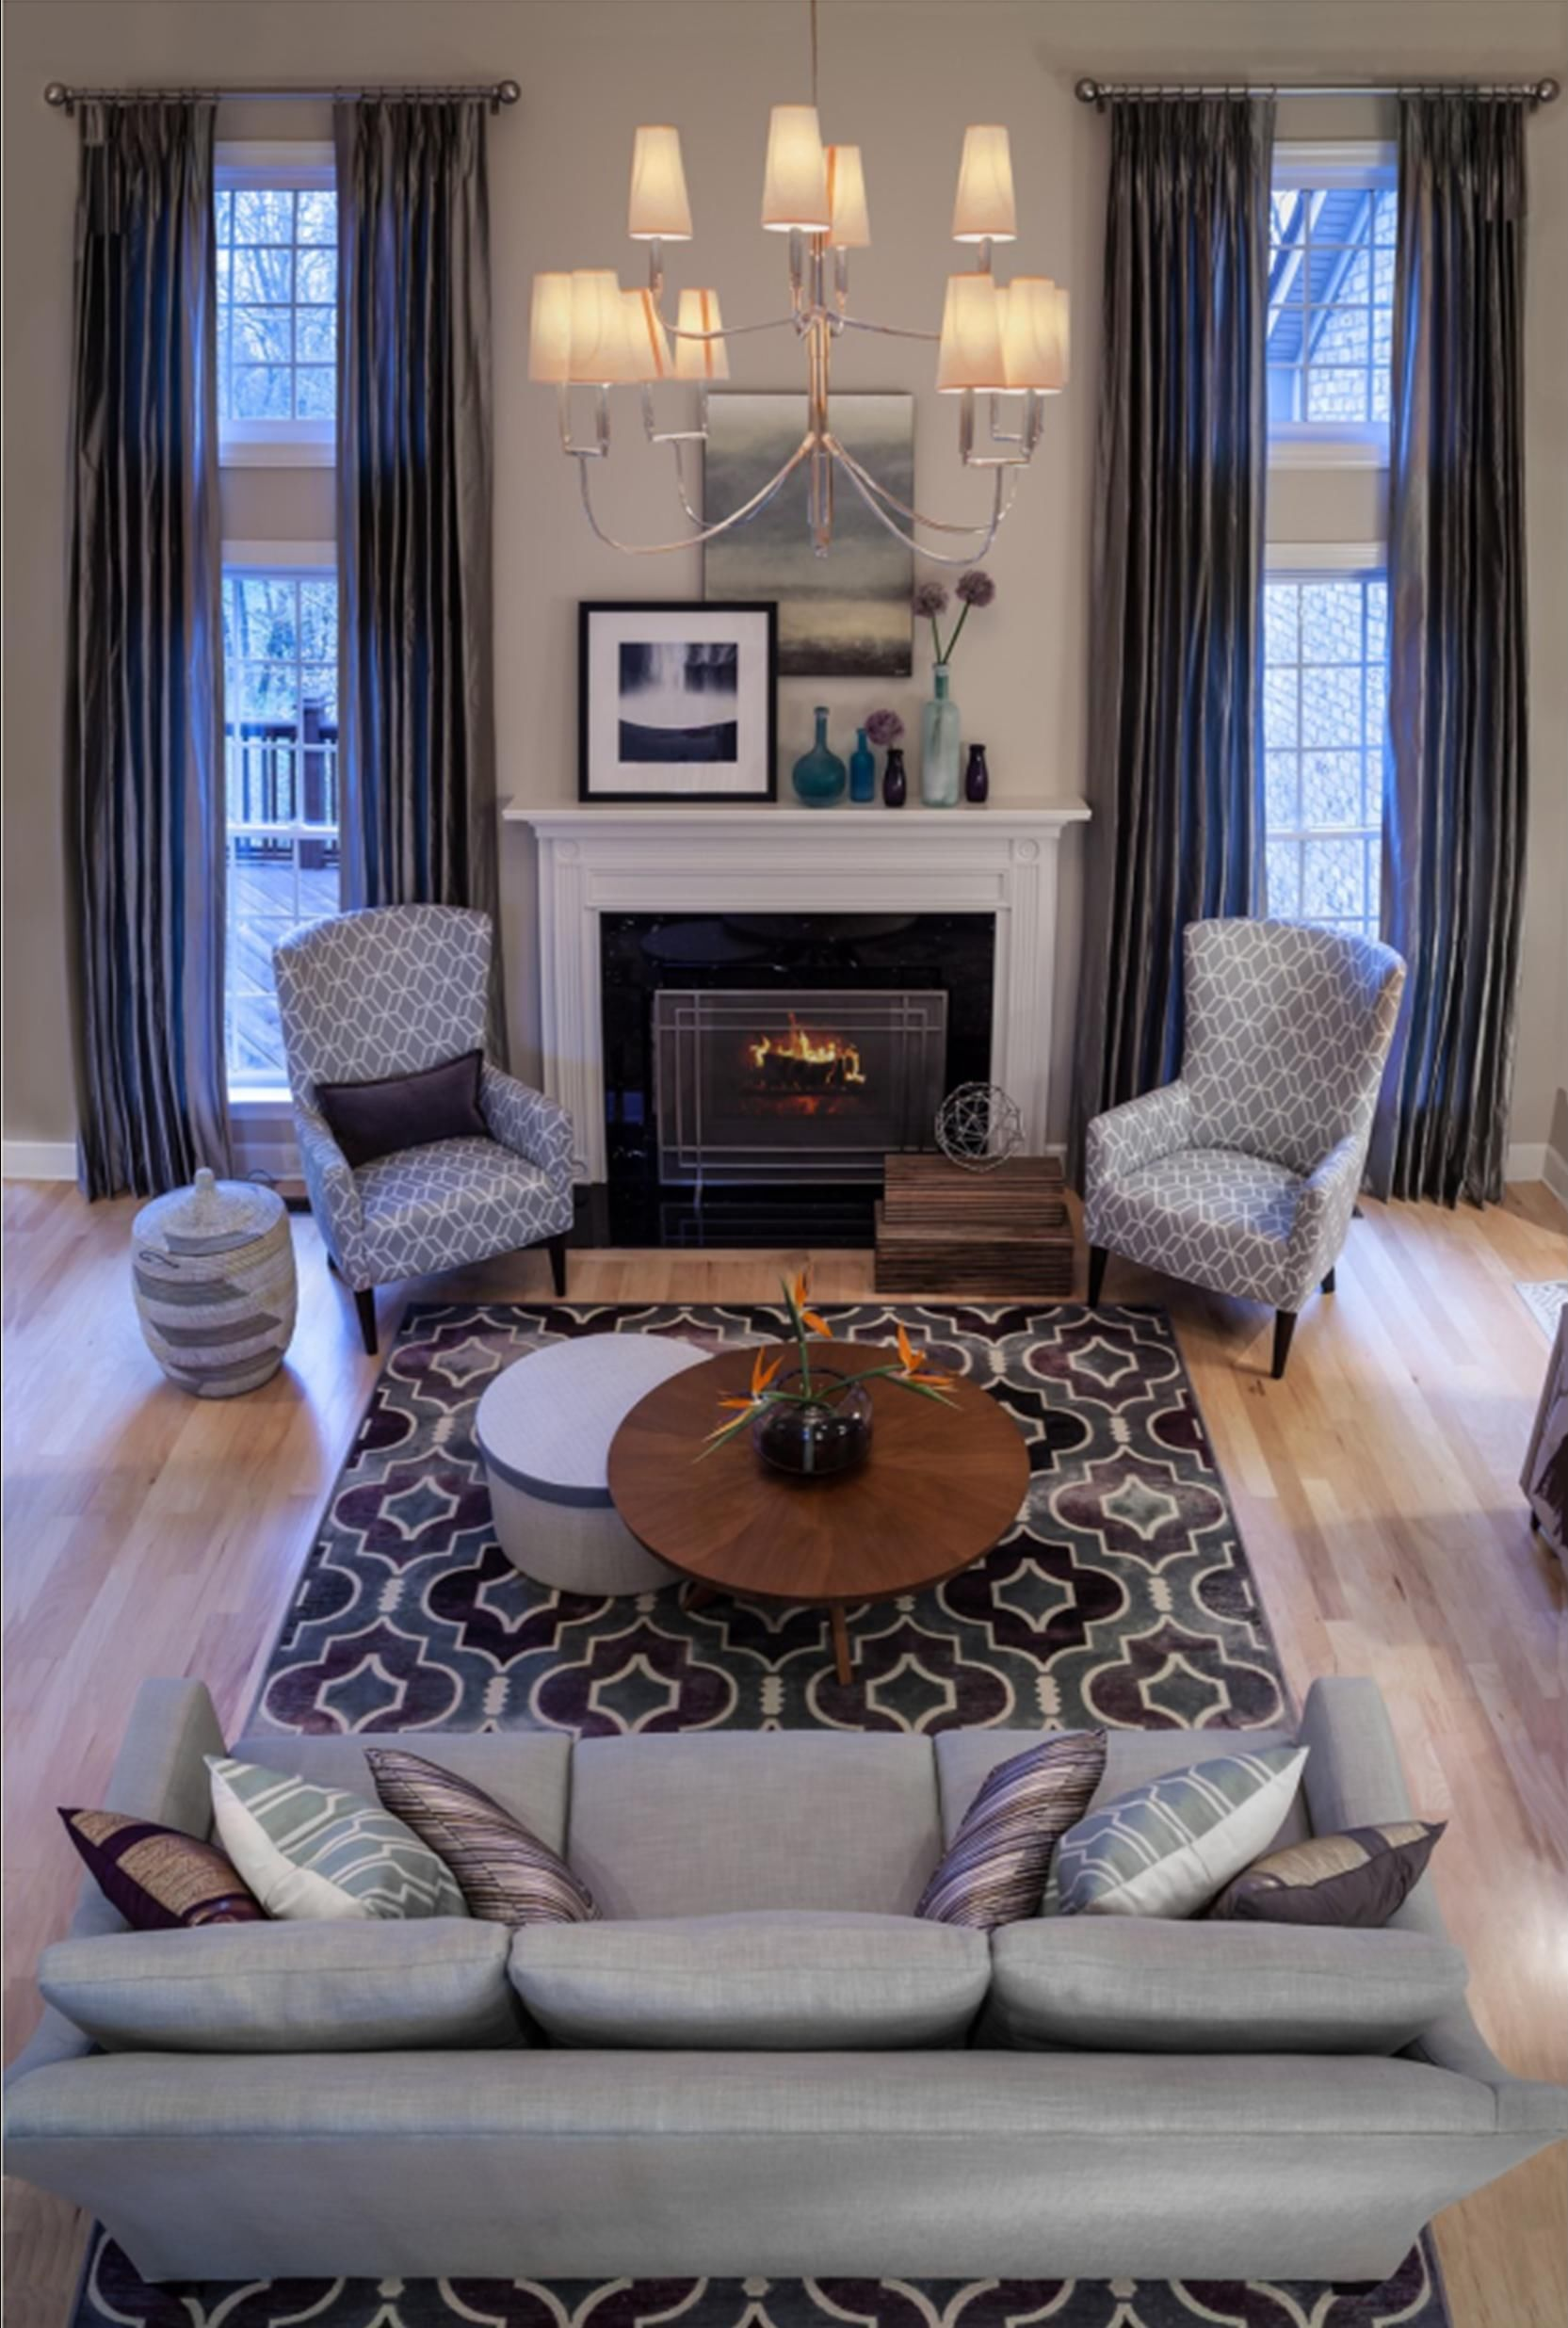 Living Room - Eclectic - Living room - Images by Beckwith Interiors ...